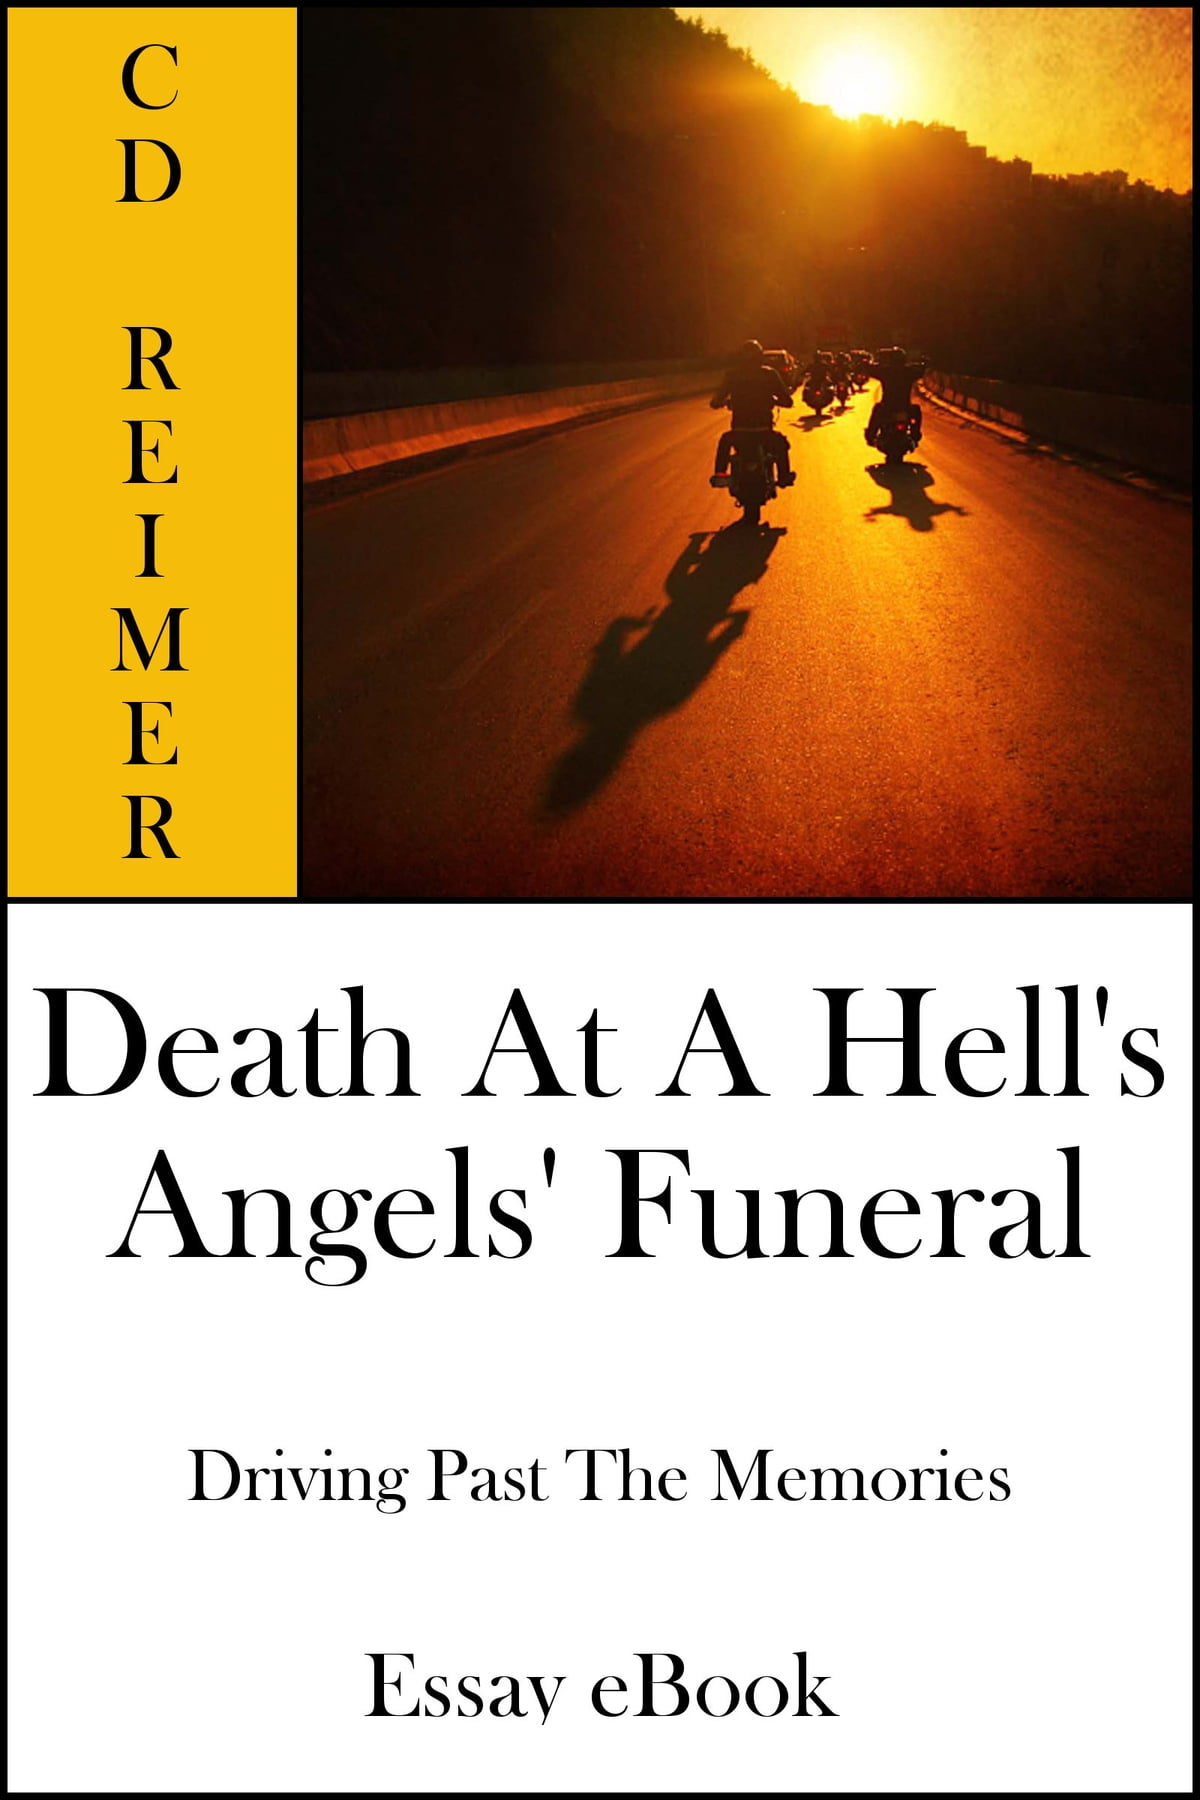 death at a hell s angels funeral driving past the memories death at a hell s angels funeral driving past the memories essay ebook by c d reimer 9781465972224 kobo